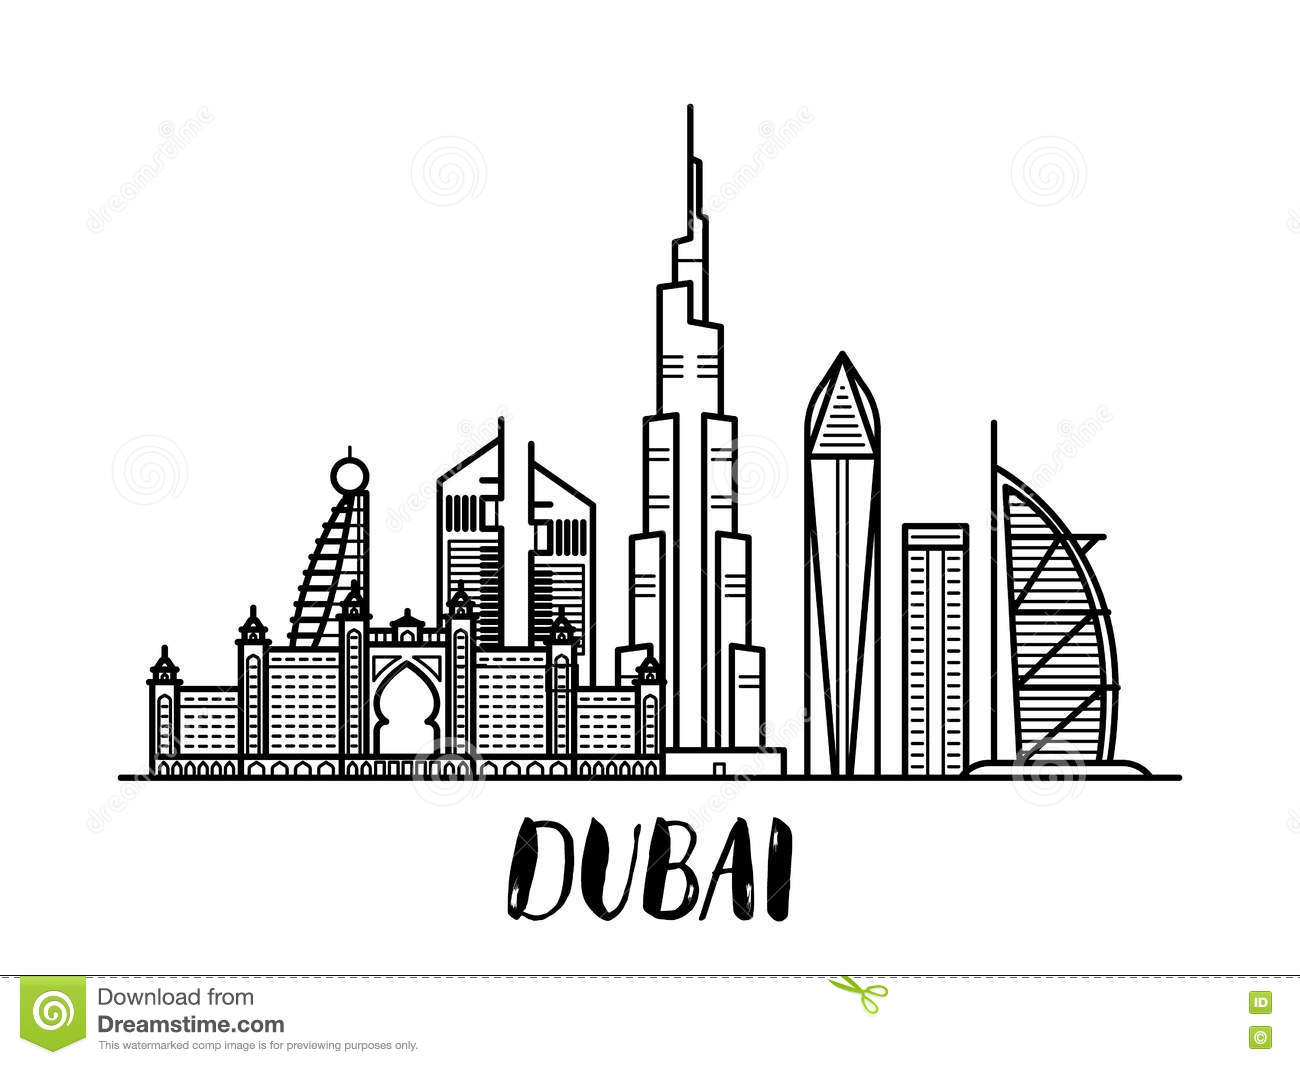 Dubai Landscape Line Art Illustration Wi-Dubai landscape line art illustration with modern lettering. Famous  landmark with modern lettering Royalty Free-13